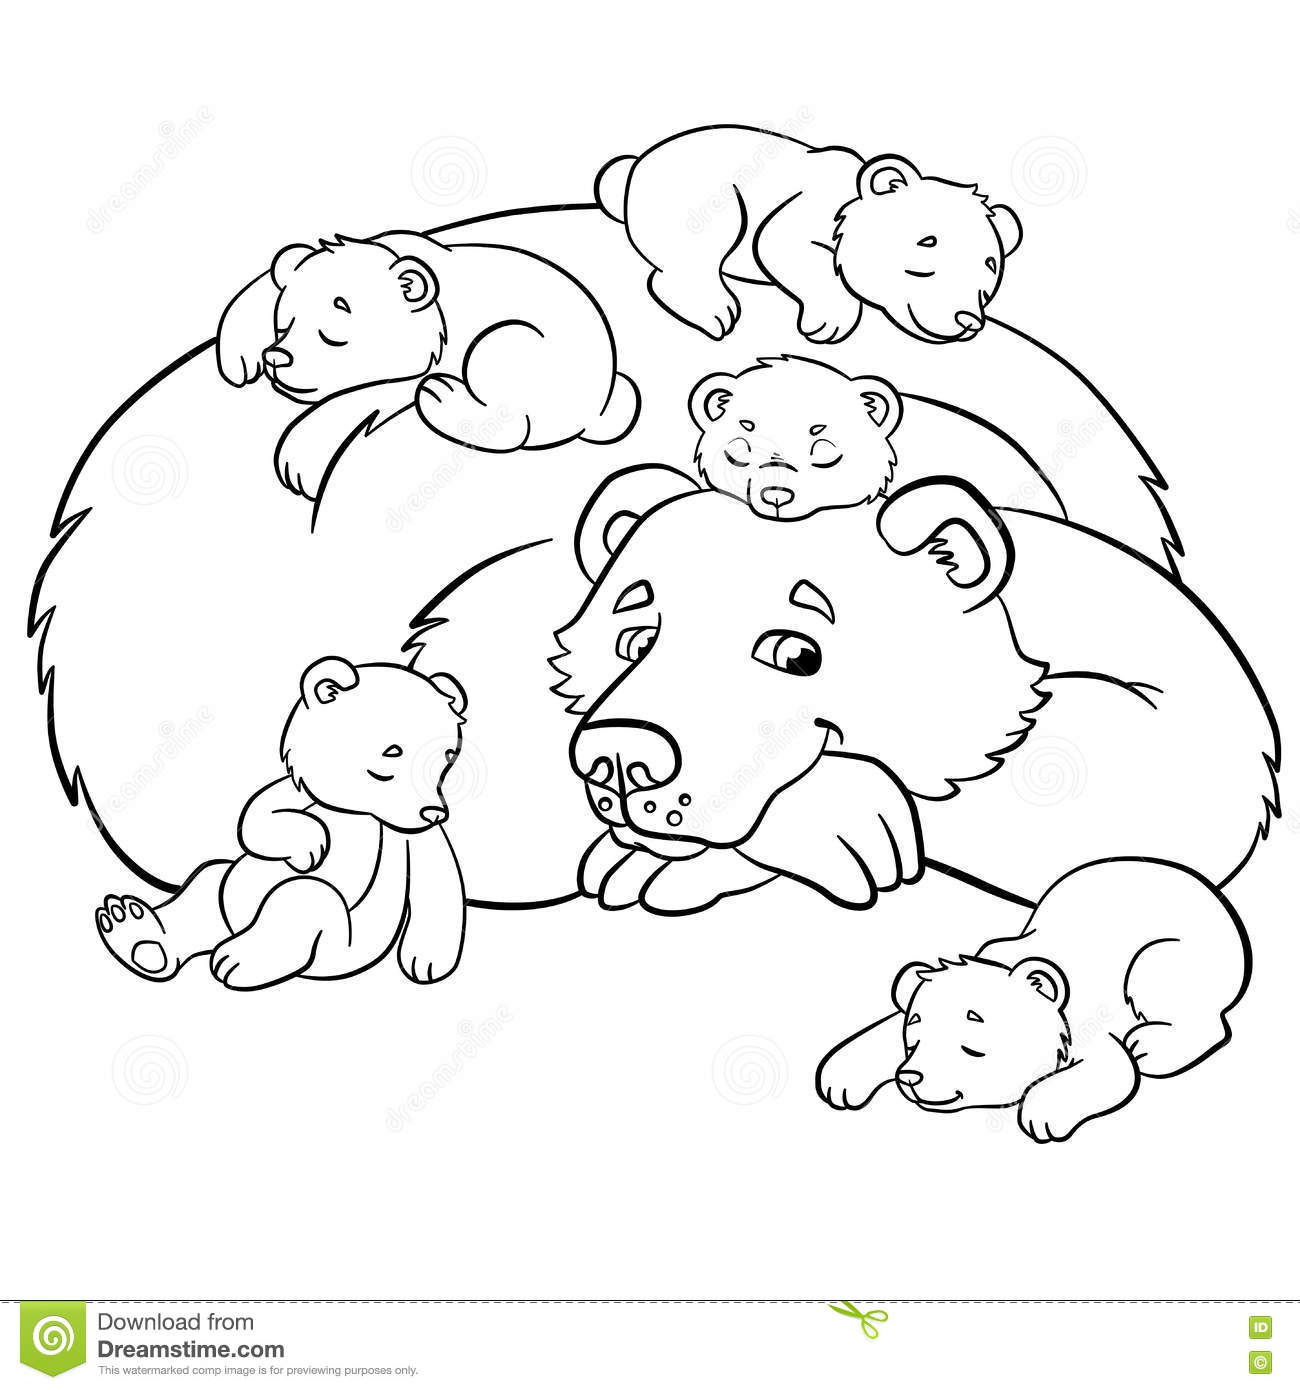 wild bear coloring pages | Coloring Pages. Wild Animals. Kind Bear Stock Vector ...